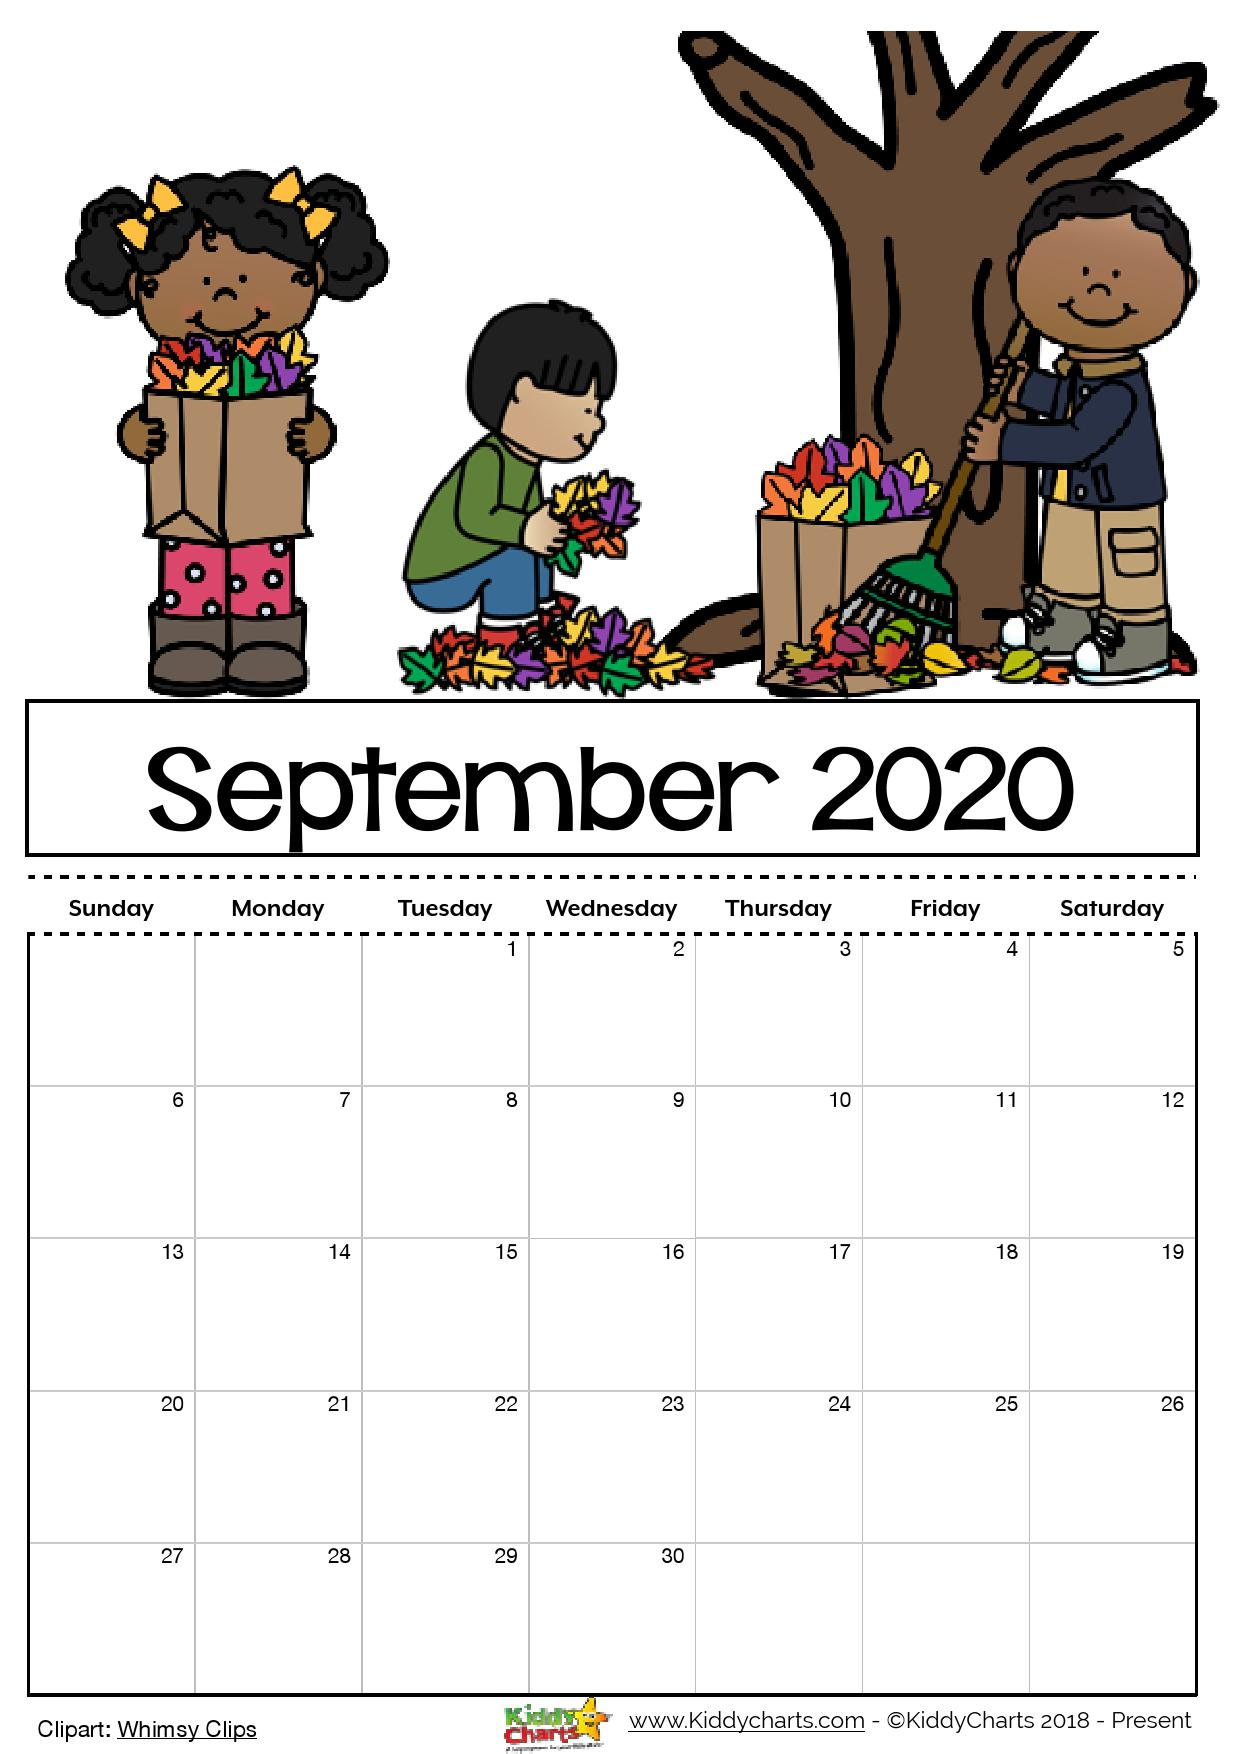 It's just an image of Agile Free Printable October 2020 Calendars